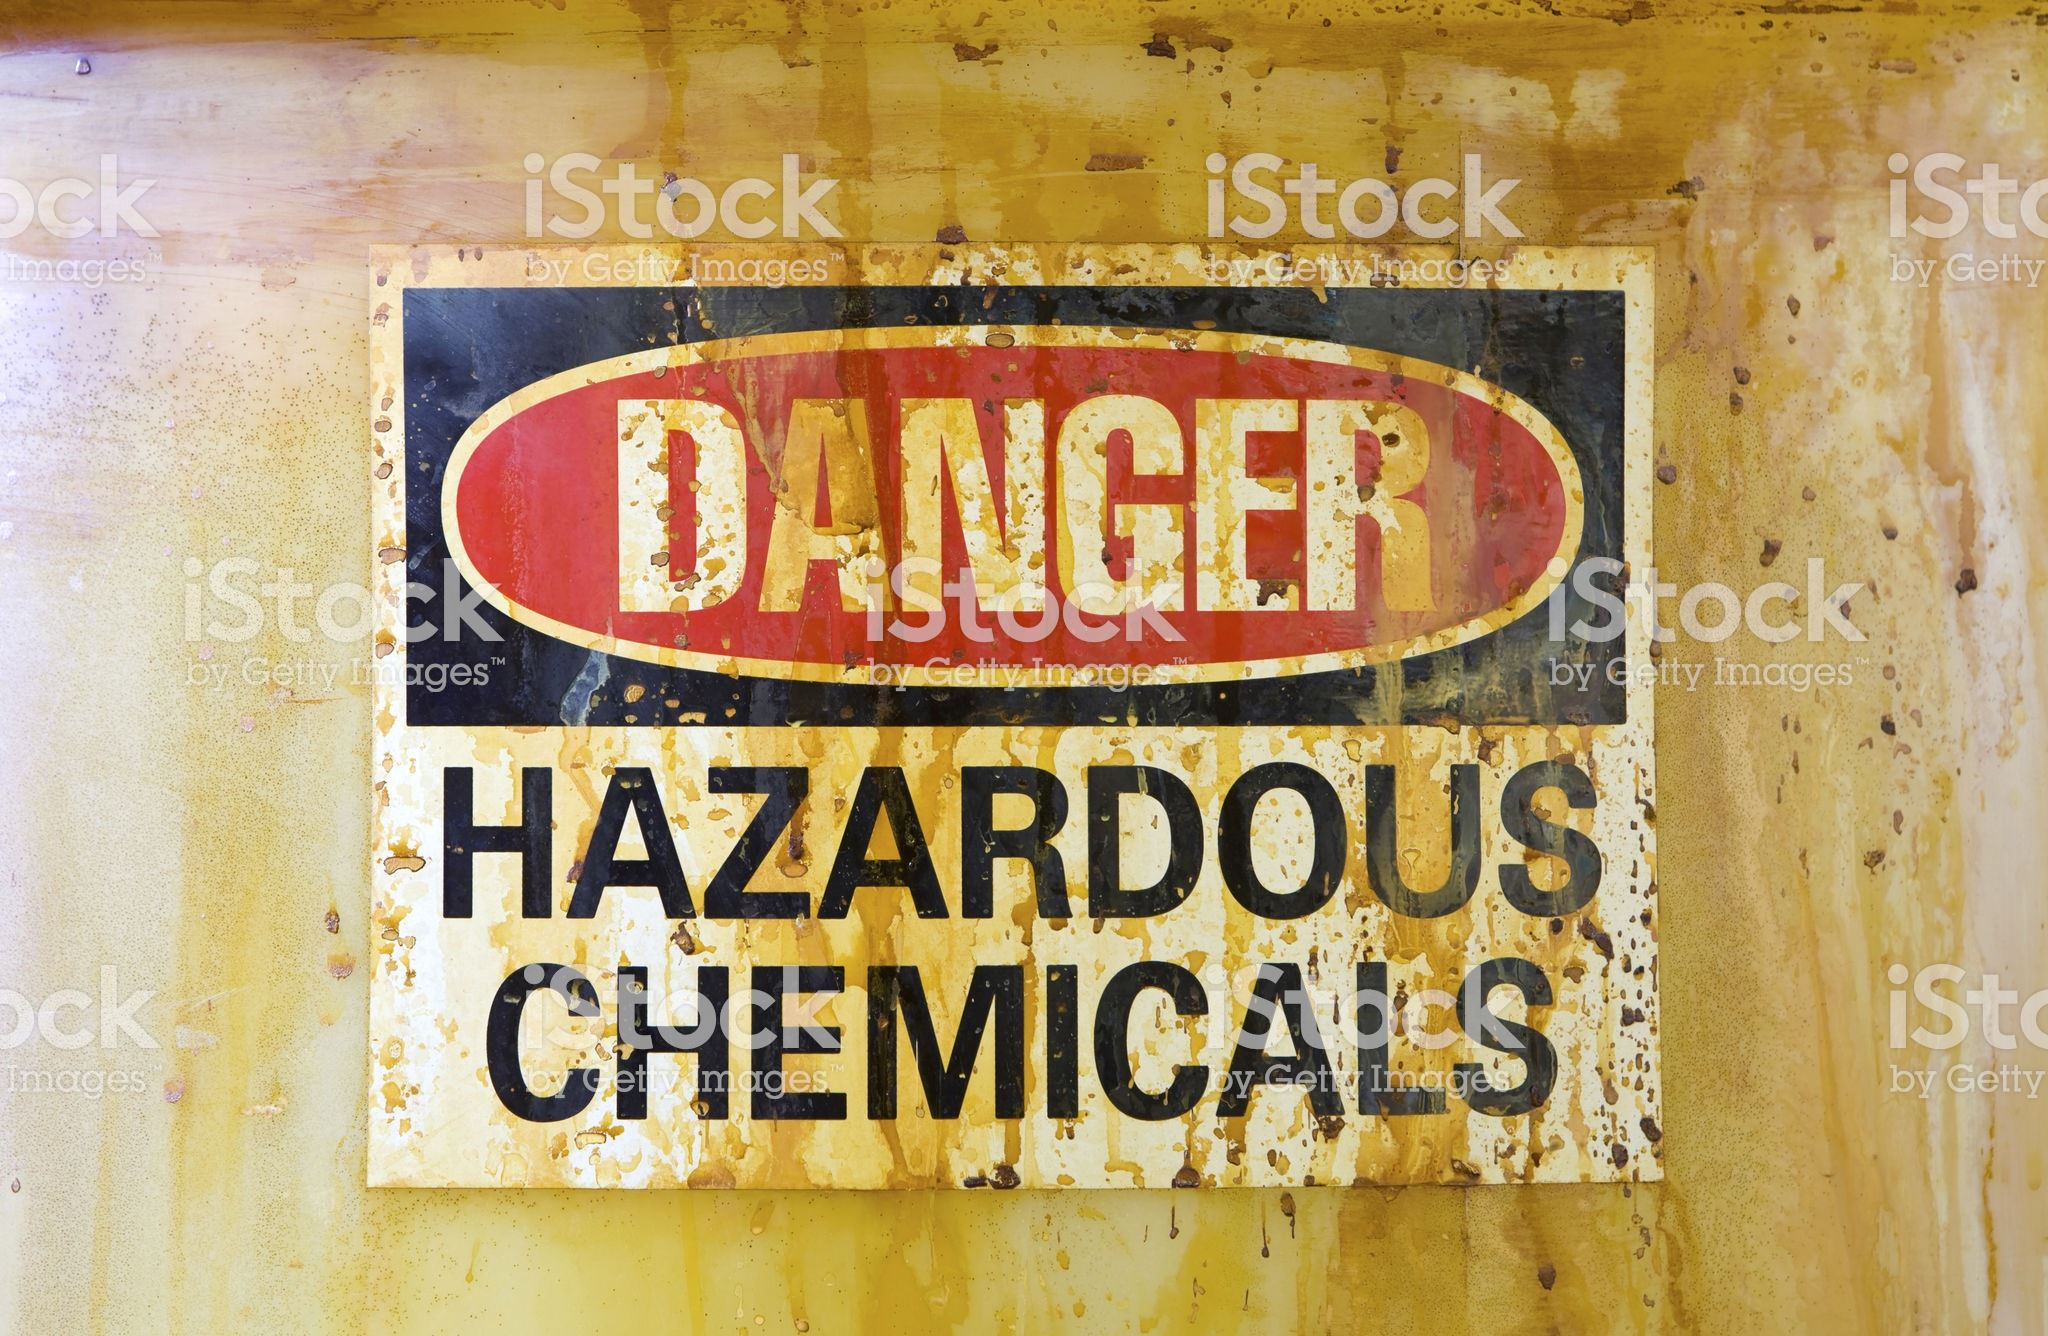 Hazardous Waste Dania Beach